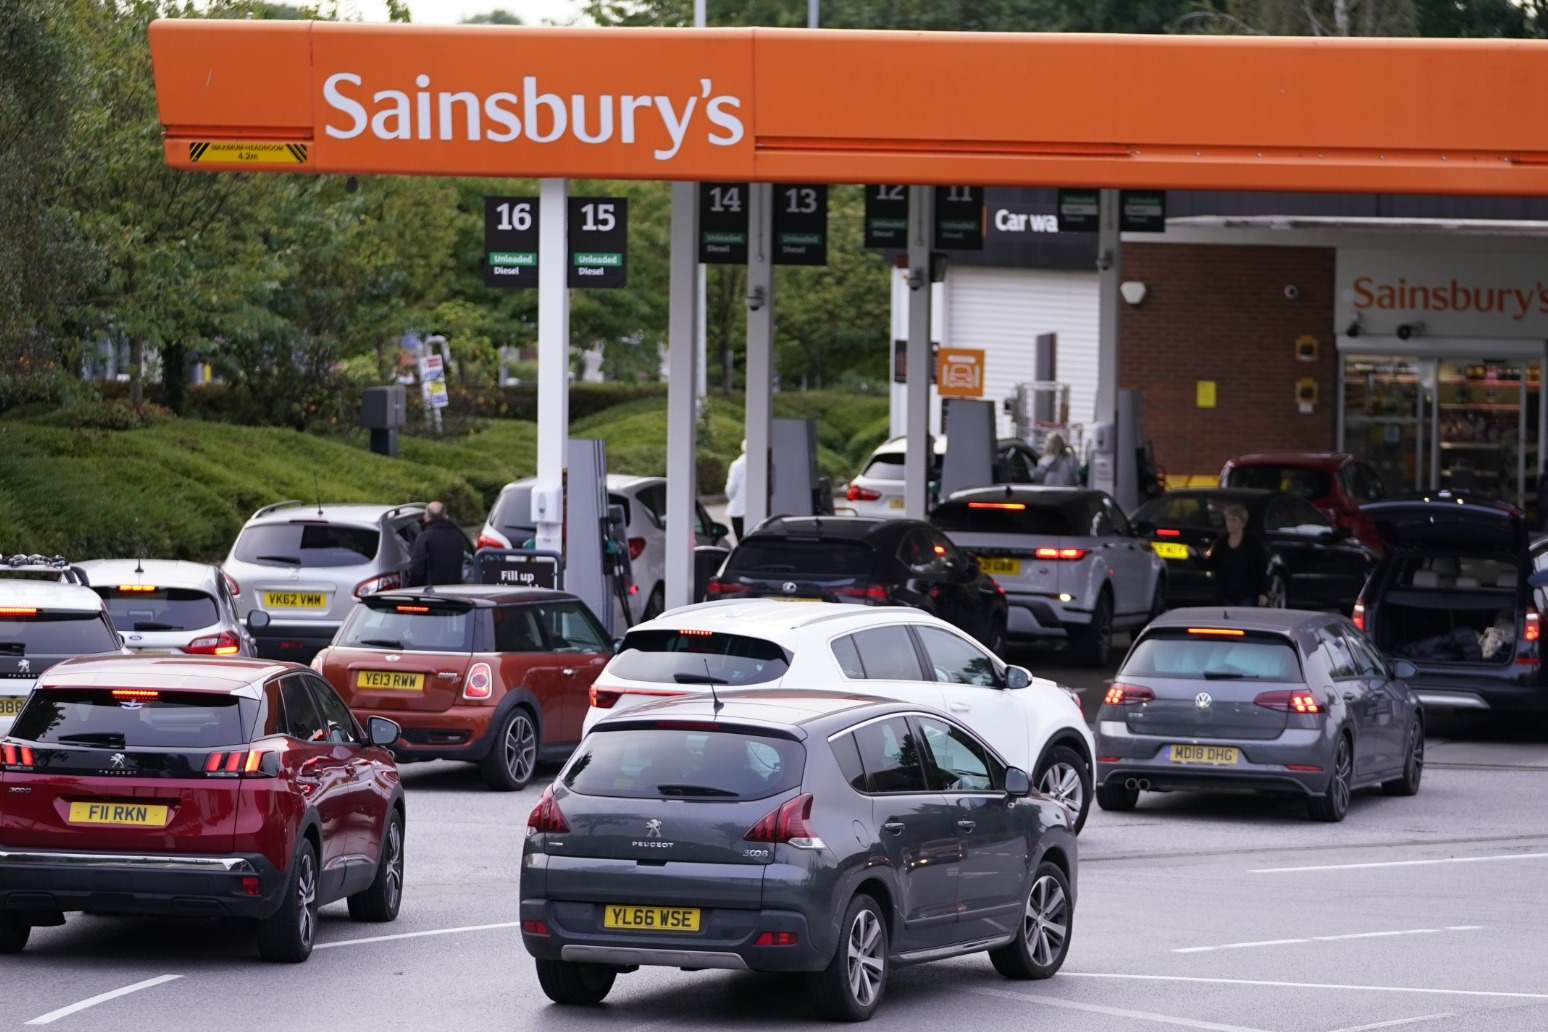 Carry on as normal,' Shapps urges drivers amid forecourt closures